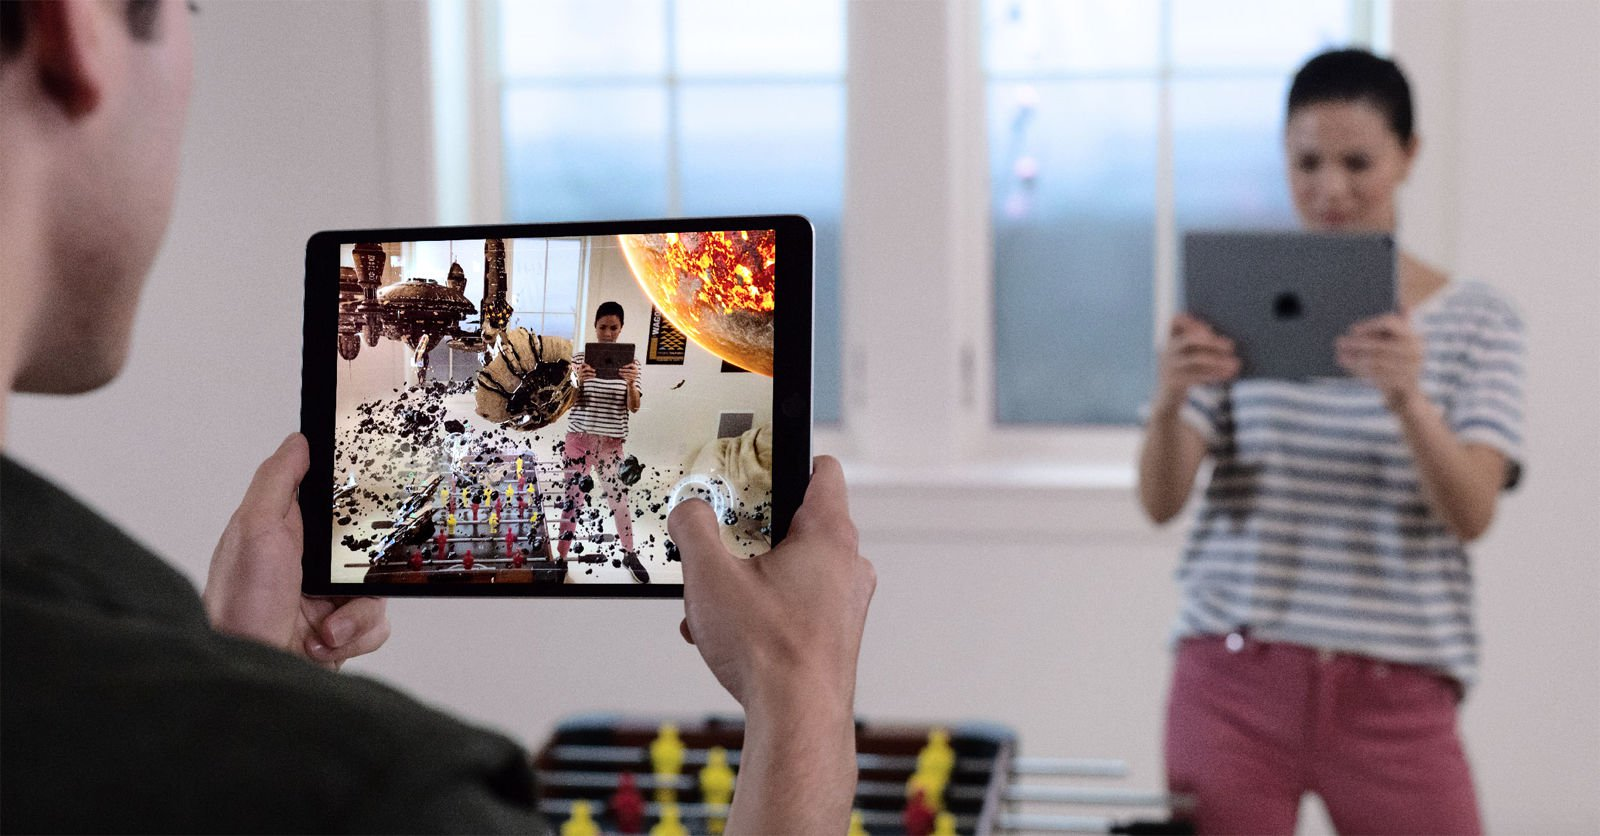 iOS 12 release date & new features: ARKit 2